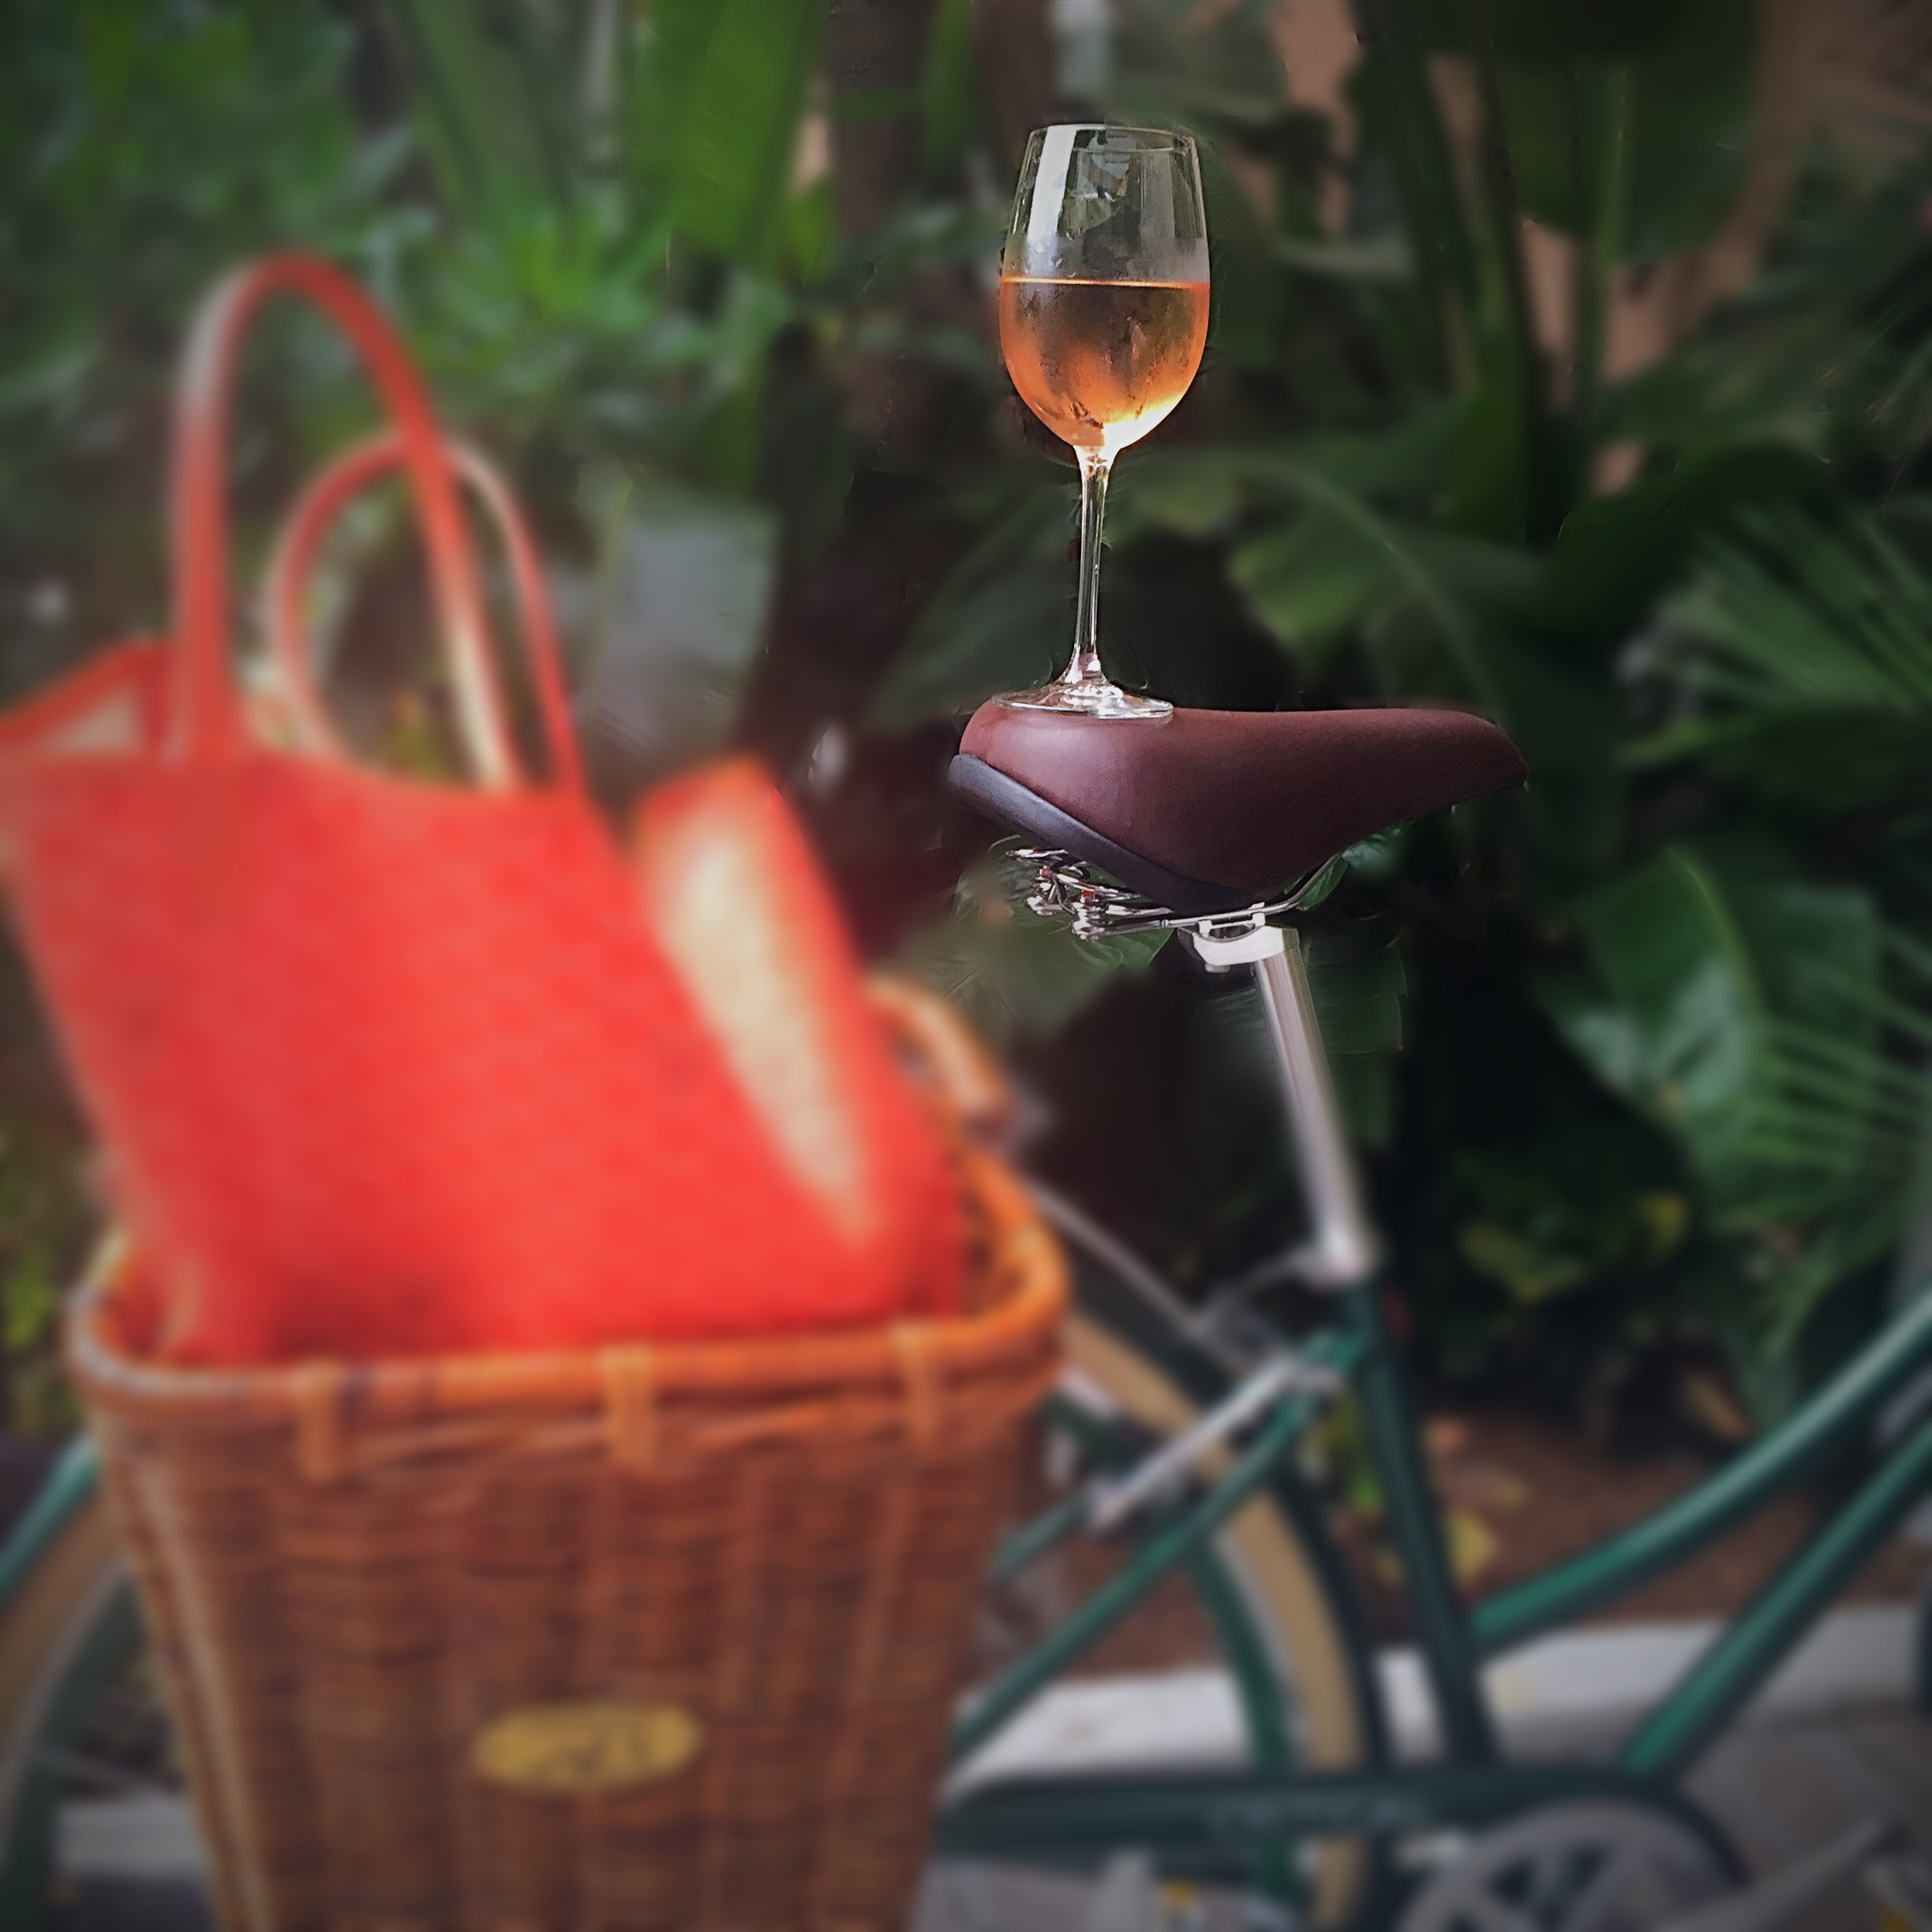 A glass of rosé is balanced on a bike seat, with a big orange bag in the back basket of the bike.